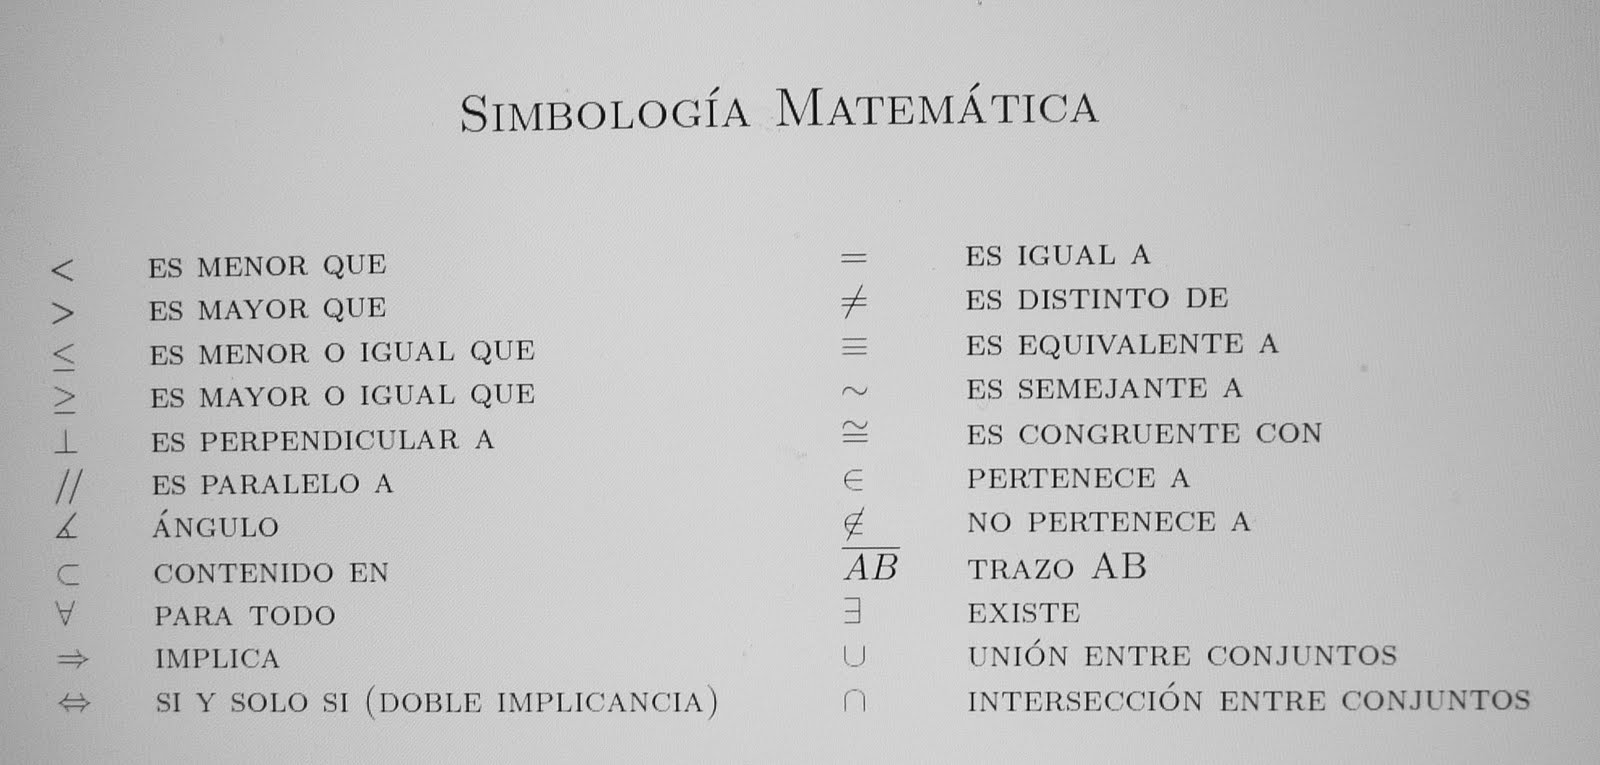 Simbologia Matematica on psu